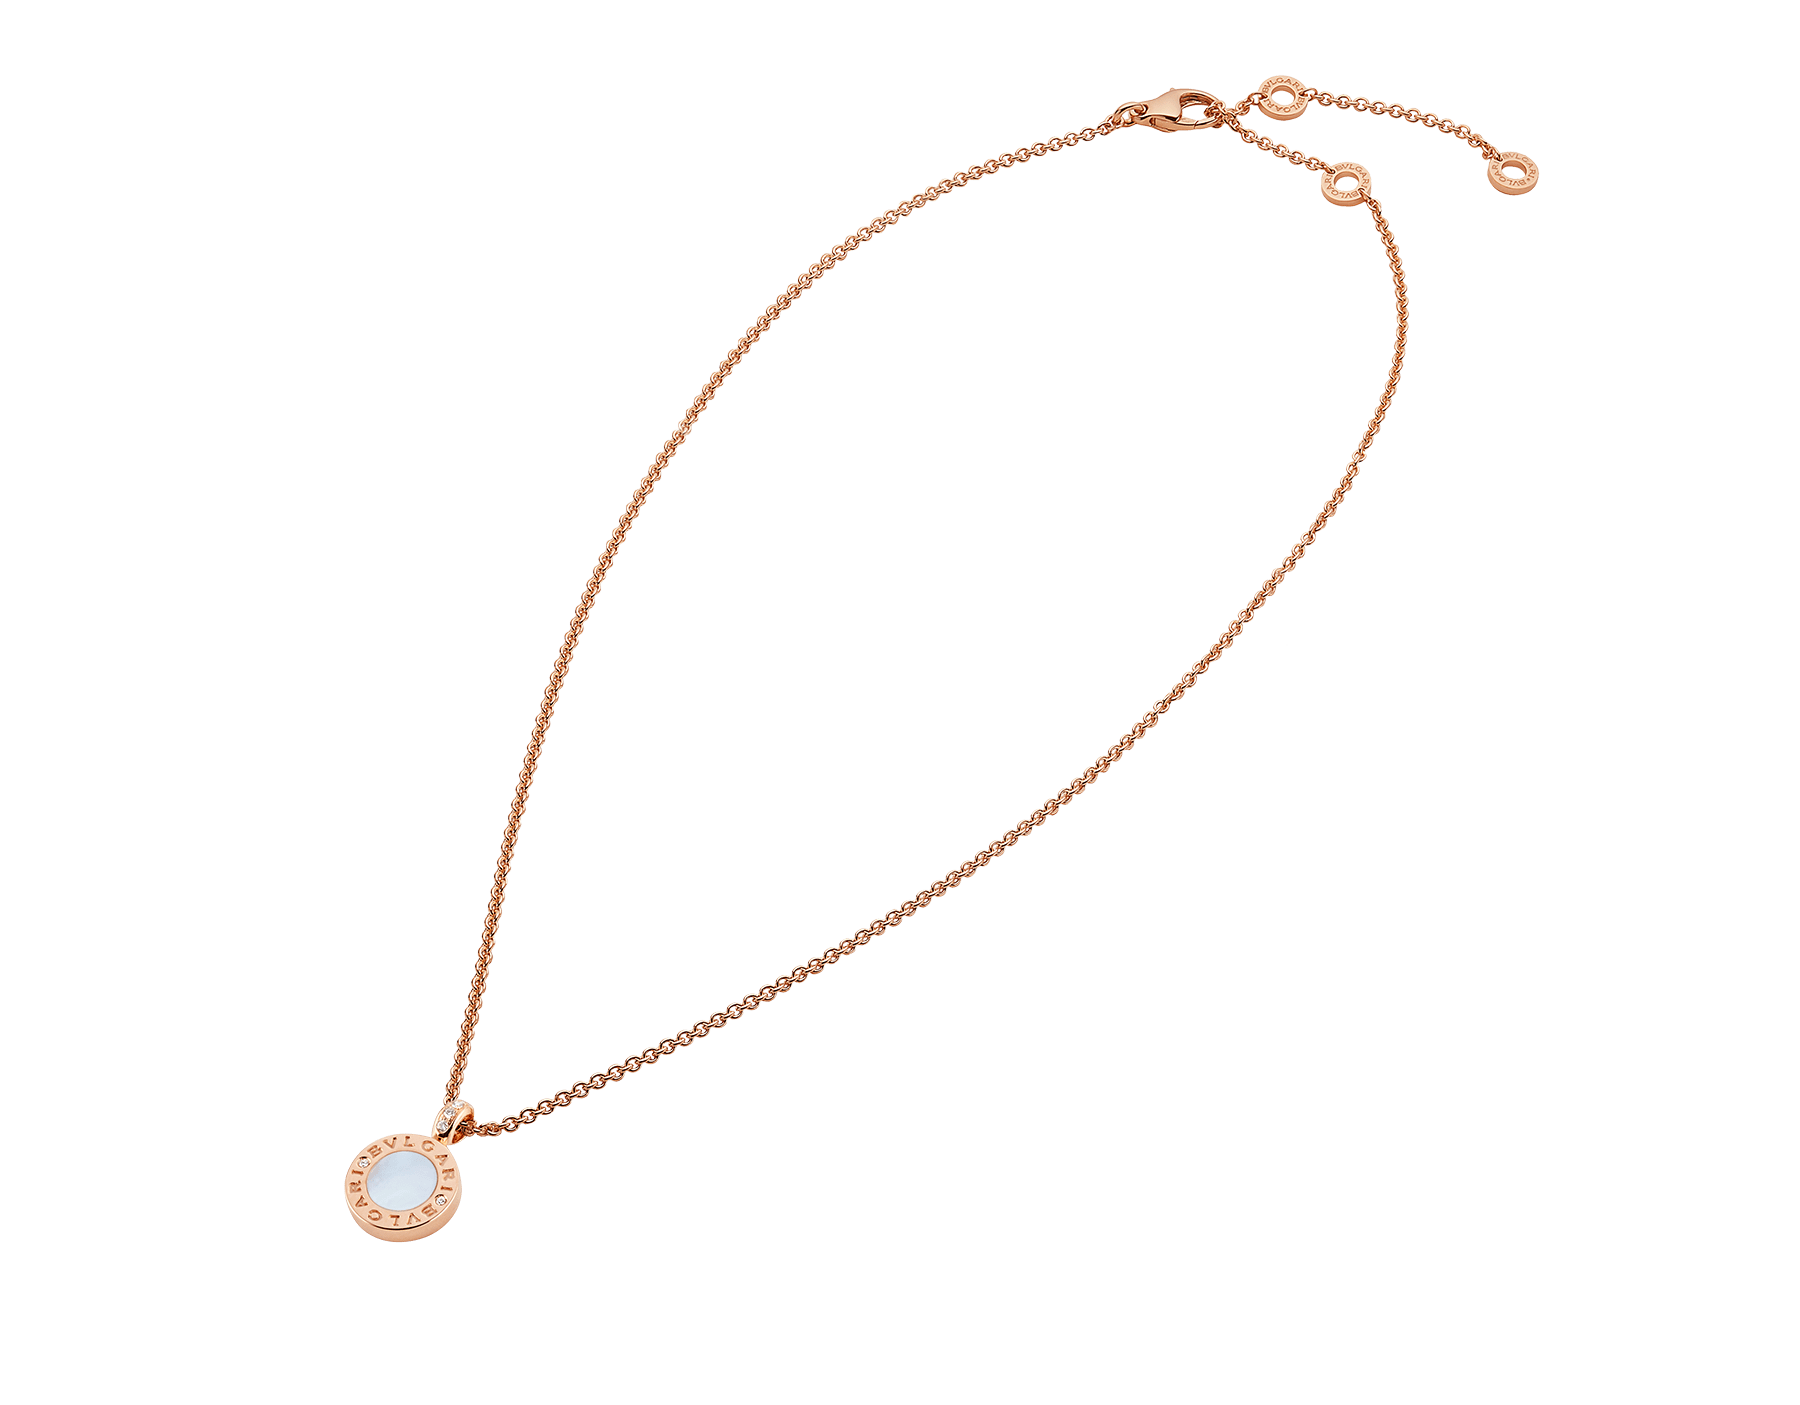 BVLGARI BVLGARI necklace with 18 kt rose gold chain and pendant, set with carnelian and mother-of-pearl discs and with details in pavé diamonds. 352883 image 2